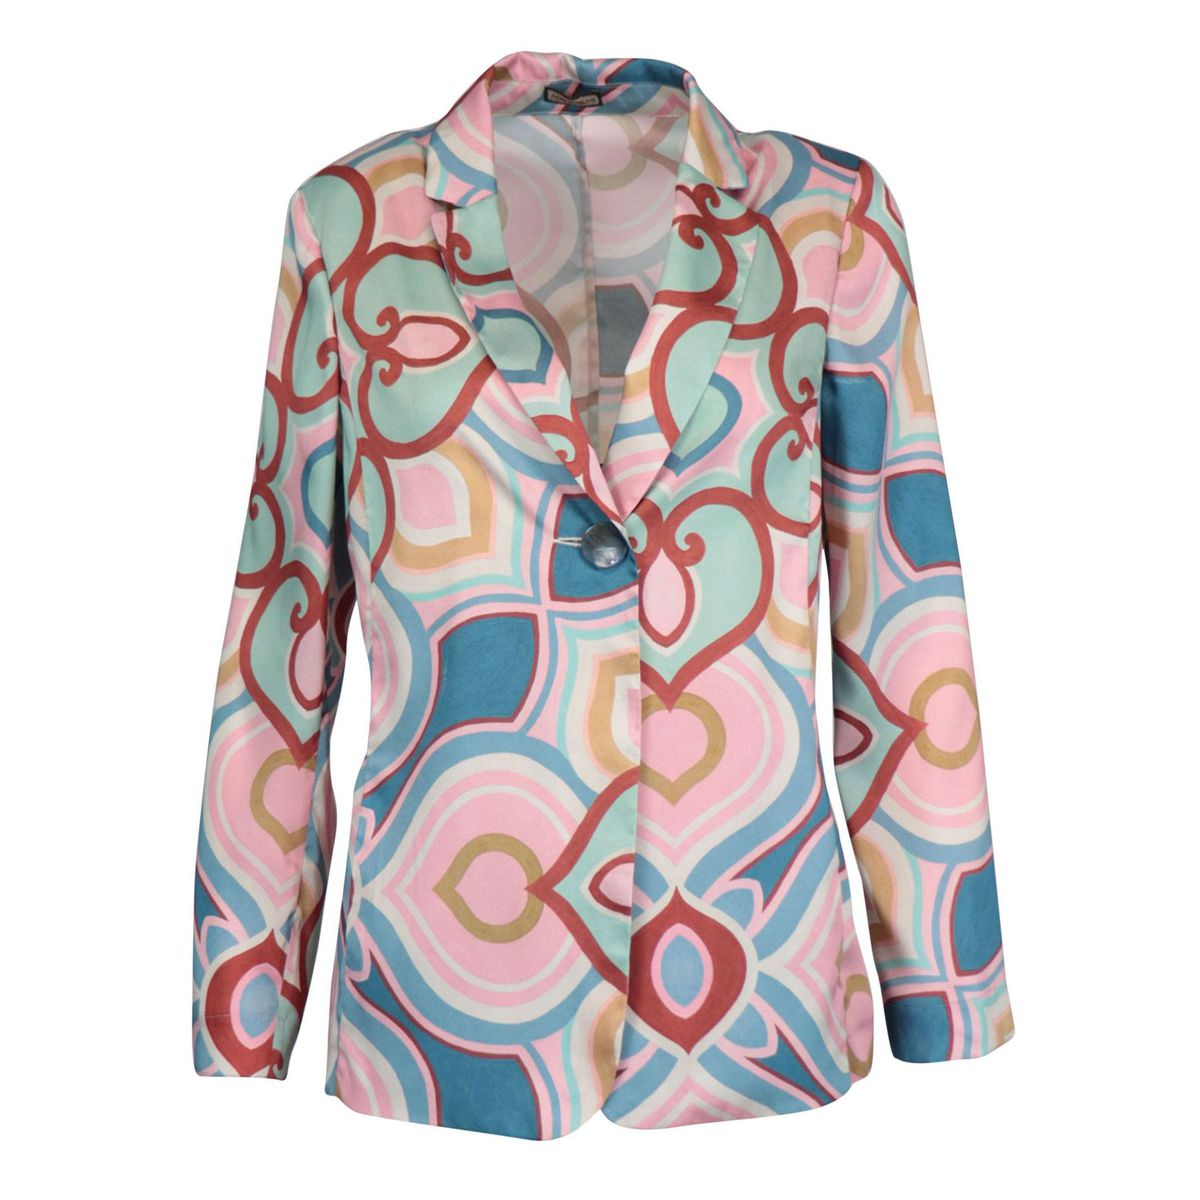 Unlined jacket with patterned satin effect Blue / pink Maliparmi